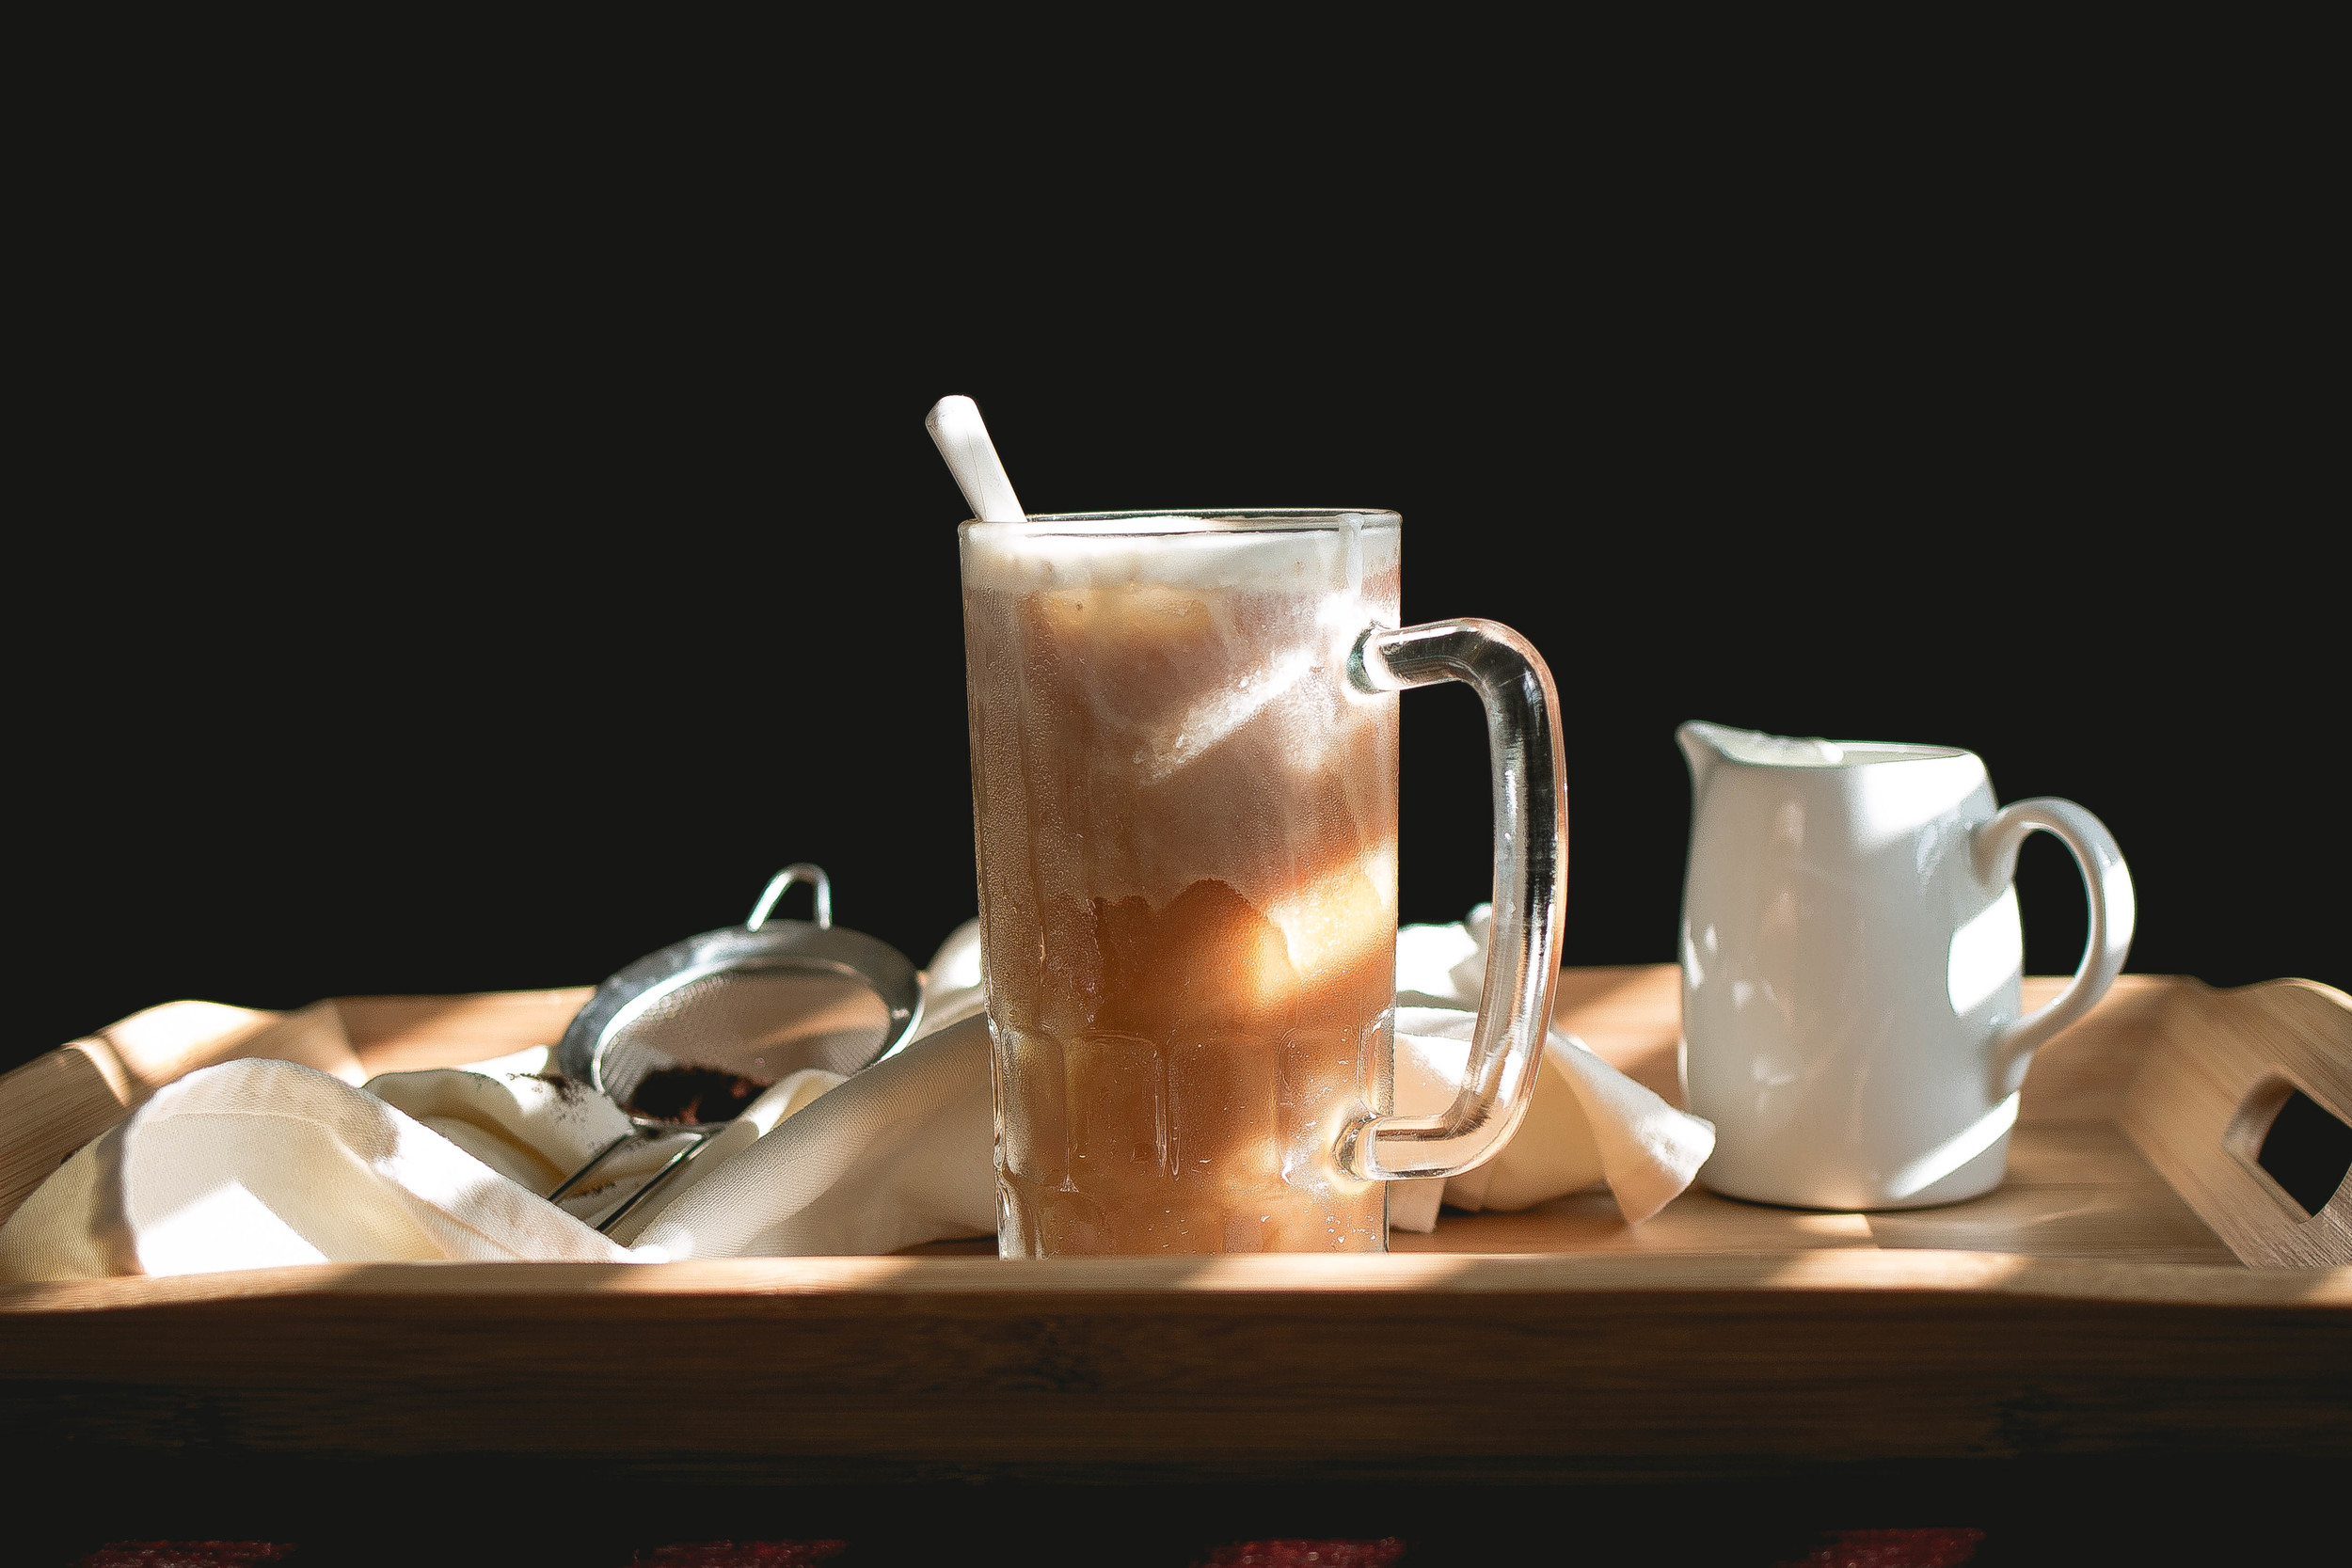 How to make 85 Degrees and 7 leaves Sea salt cream iced coffee-easy recipe | by fit for the soul